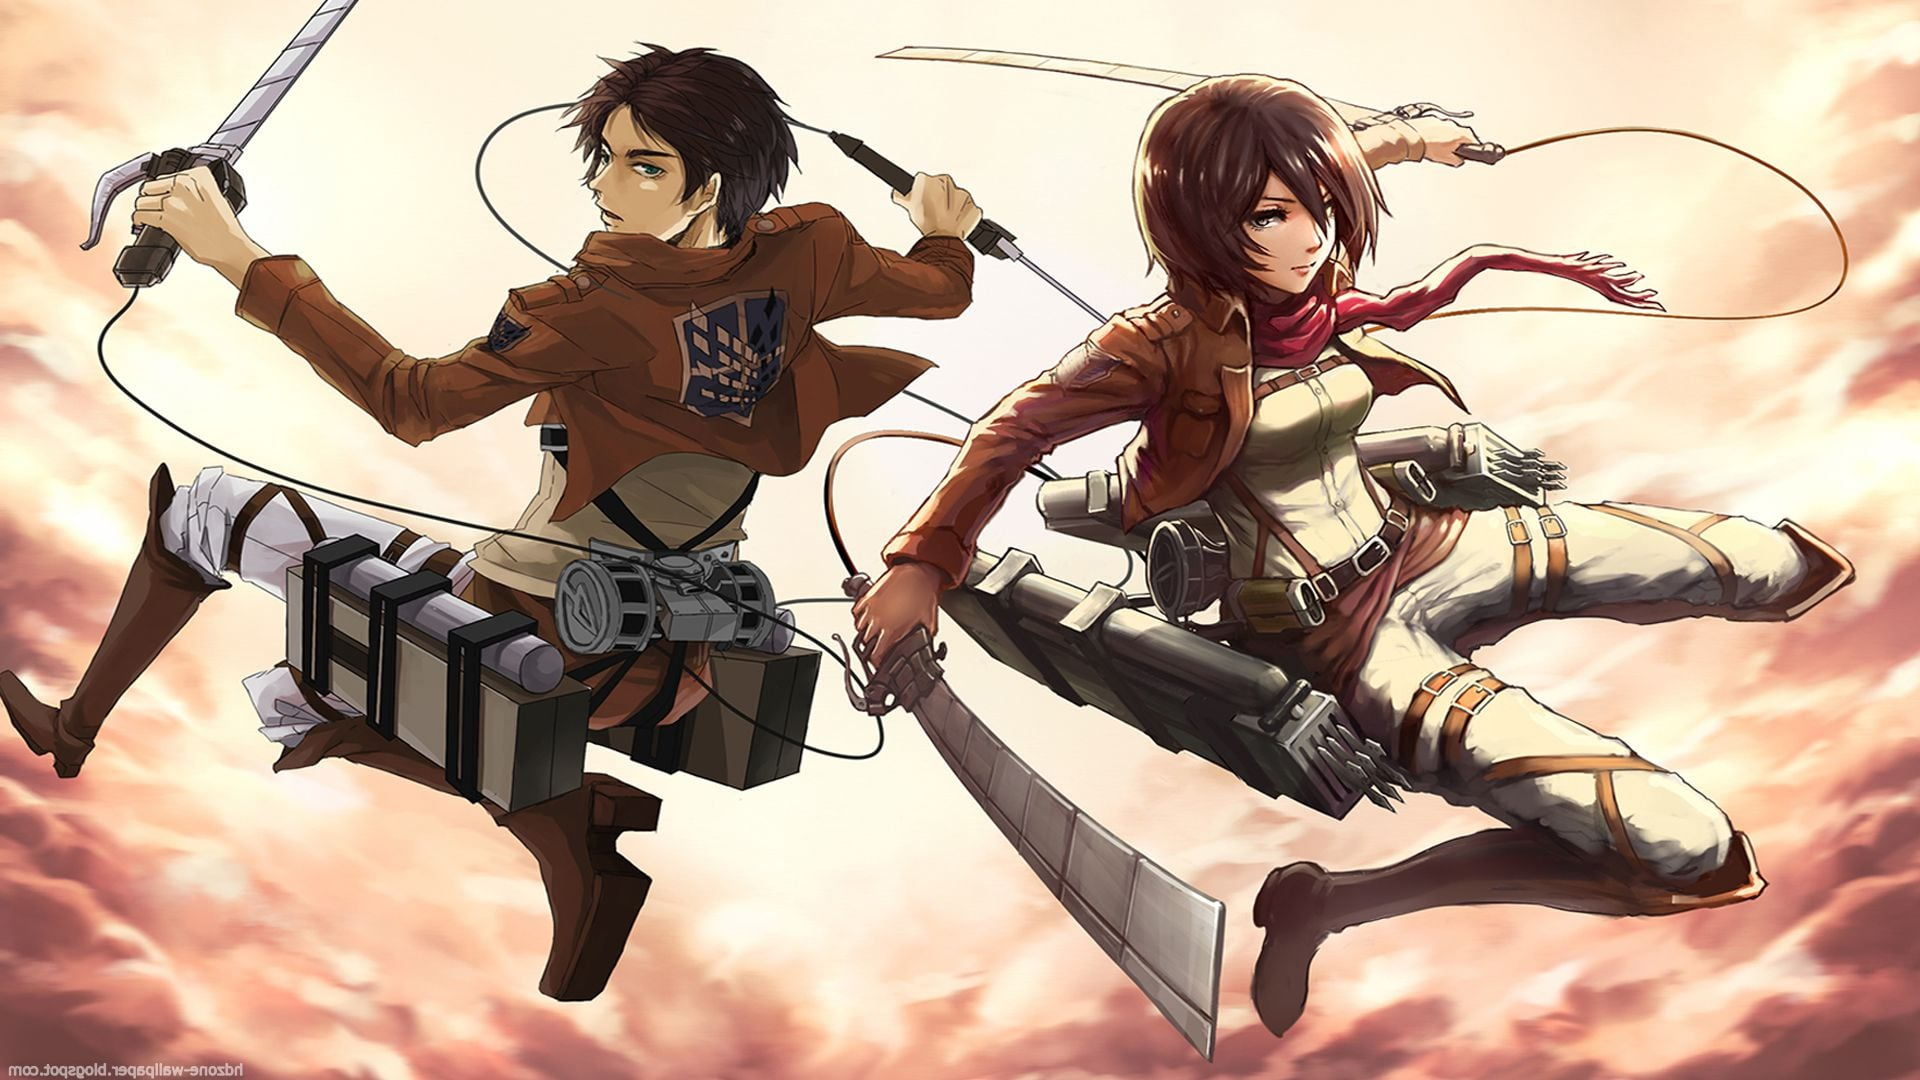 Attack On Titan Hd Wallpapers Desktop Wallpaper 1920x1080 Wallpaper Teahub Io